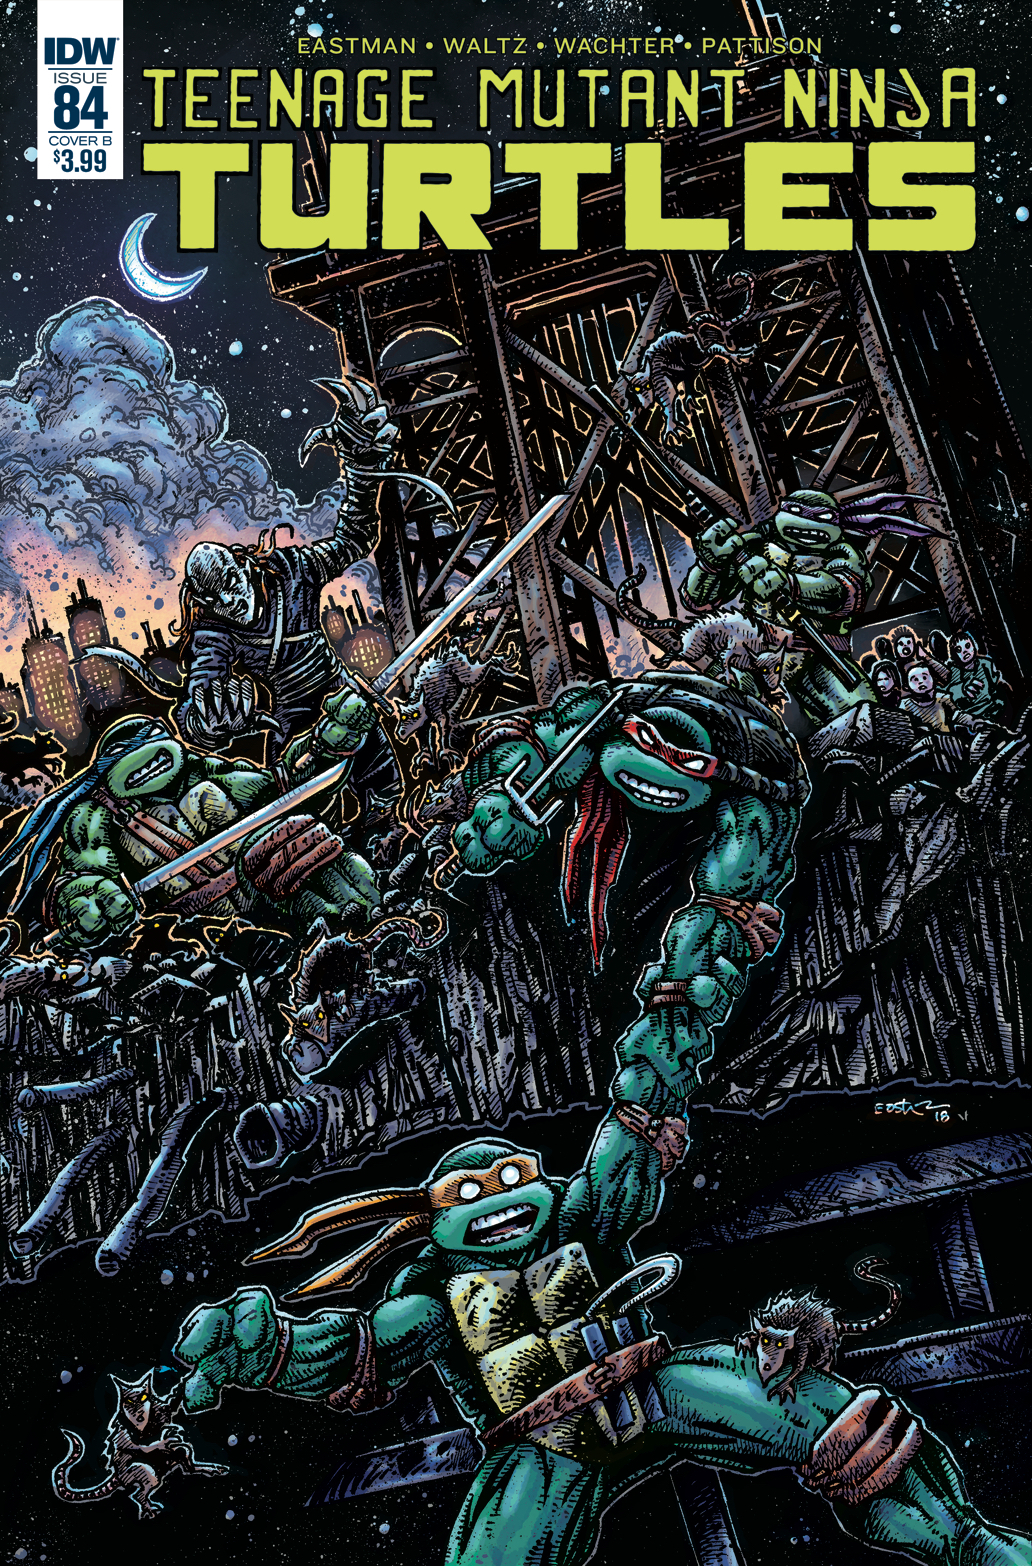 TMNT ONGOING #84 CVR B EASTMAN